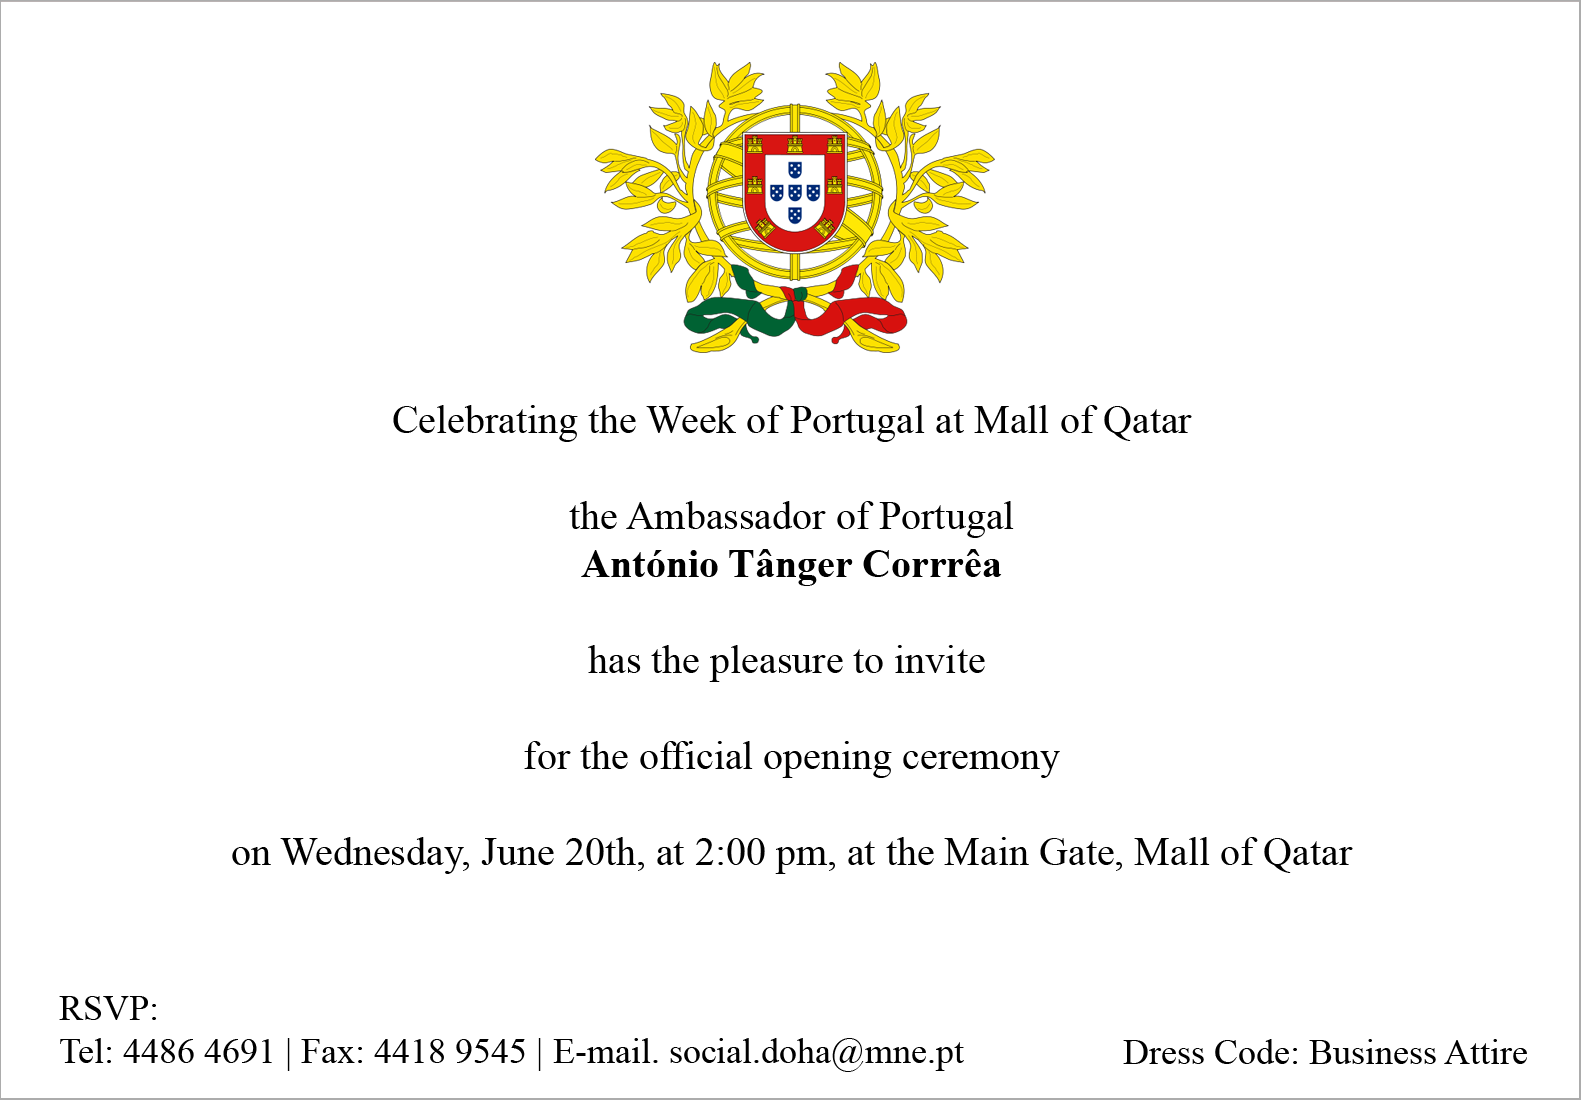 e invitation open ceremony portugal week mall of qatar